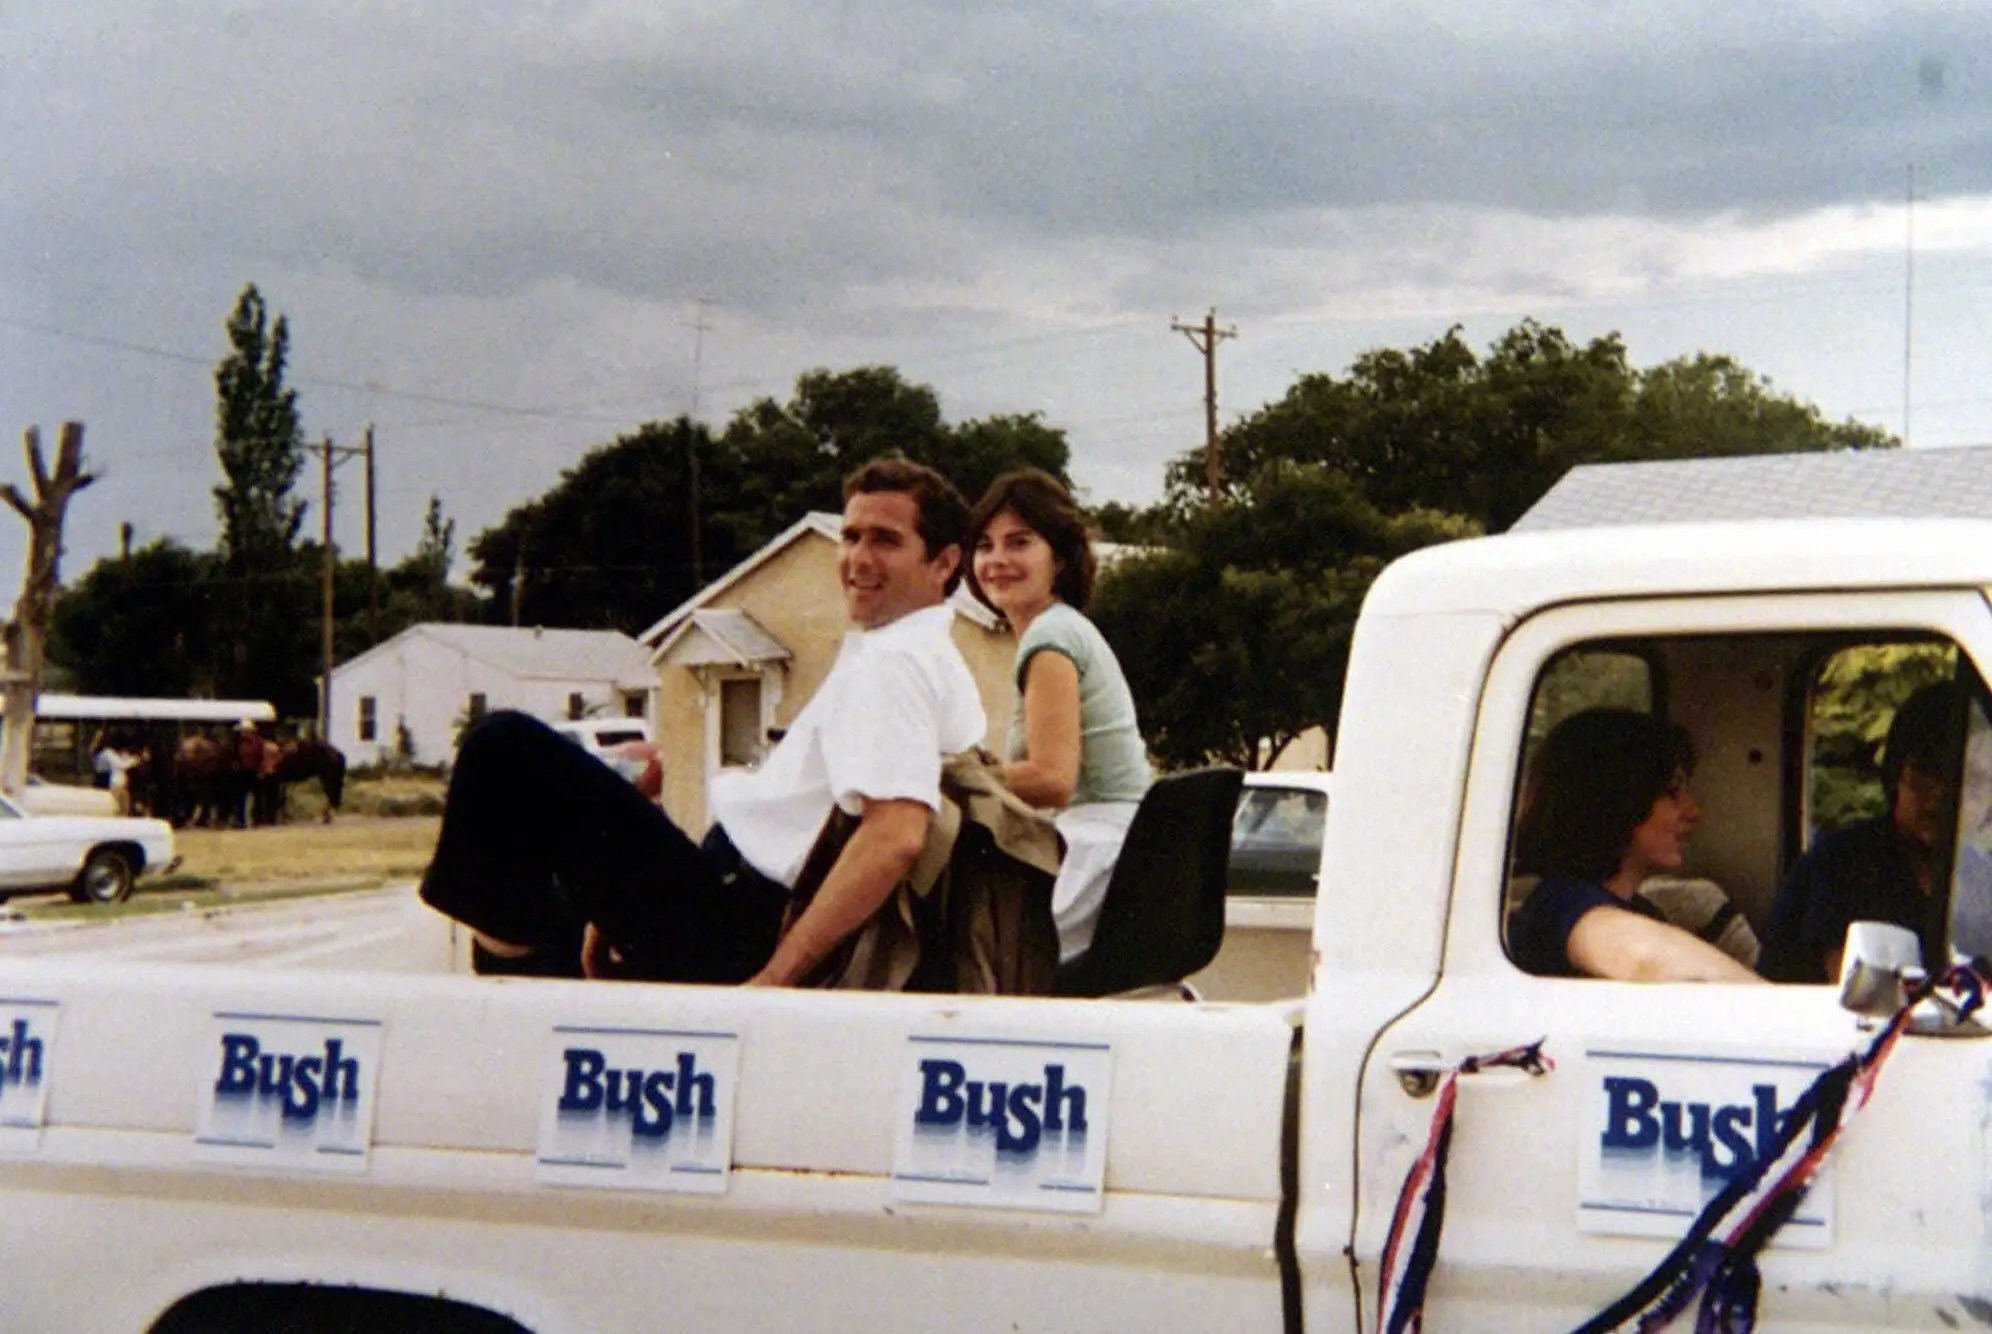 """While traveling the country on behalf of his father's presidential campaign, Bush sparked an interest in the """"other family business."""" Karl Rove convinced him to run for Texas governor, and he captured 53% of the vote. W. announced his intent to run for president during his second term."""